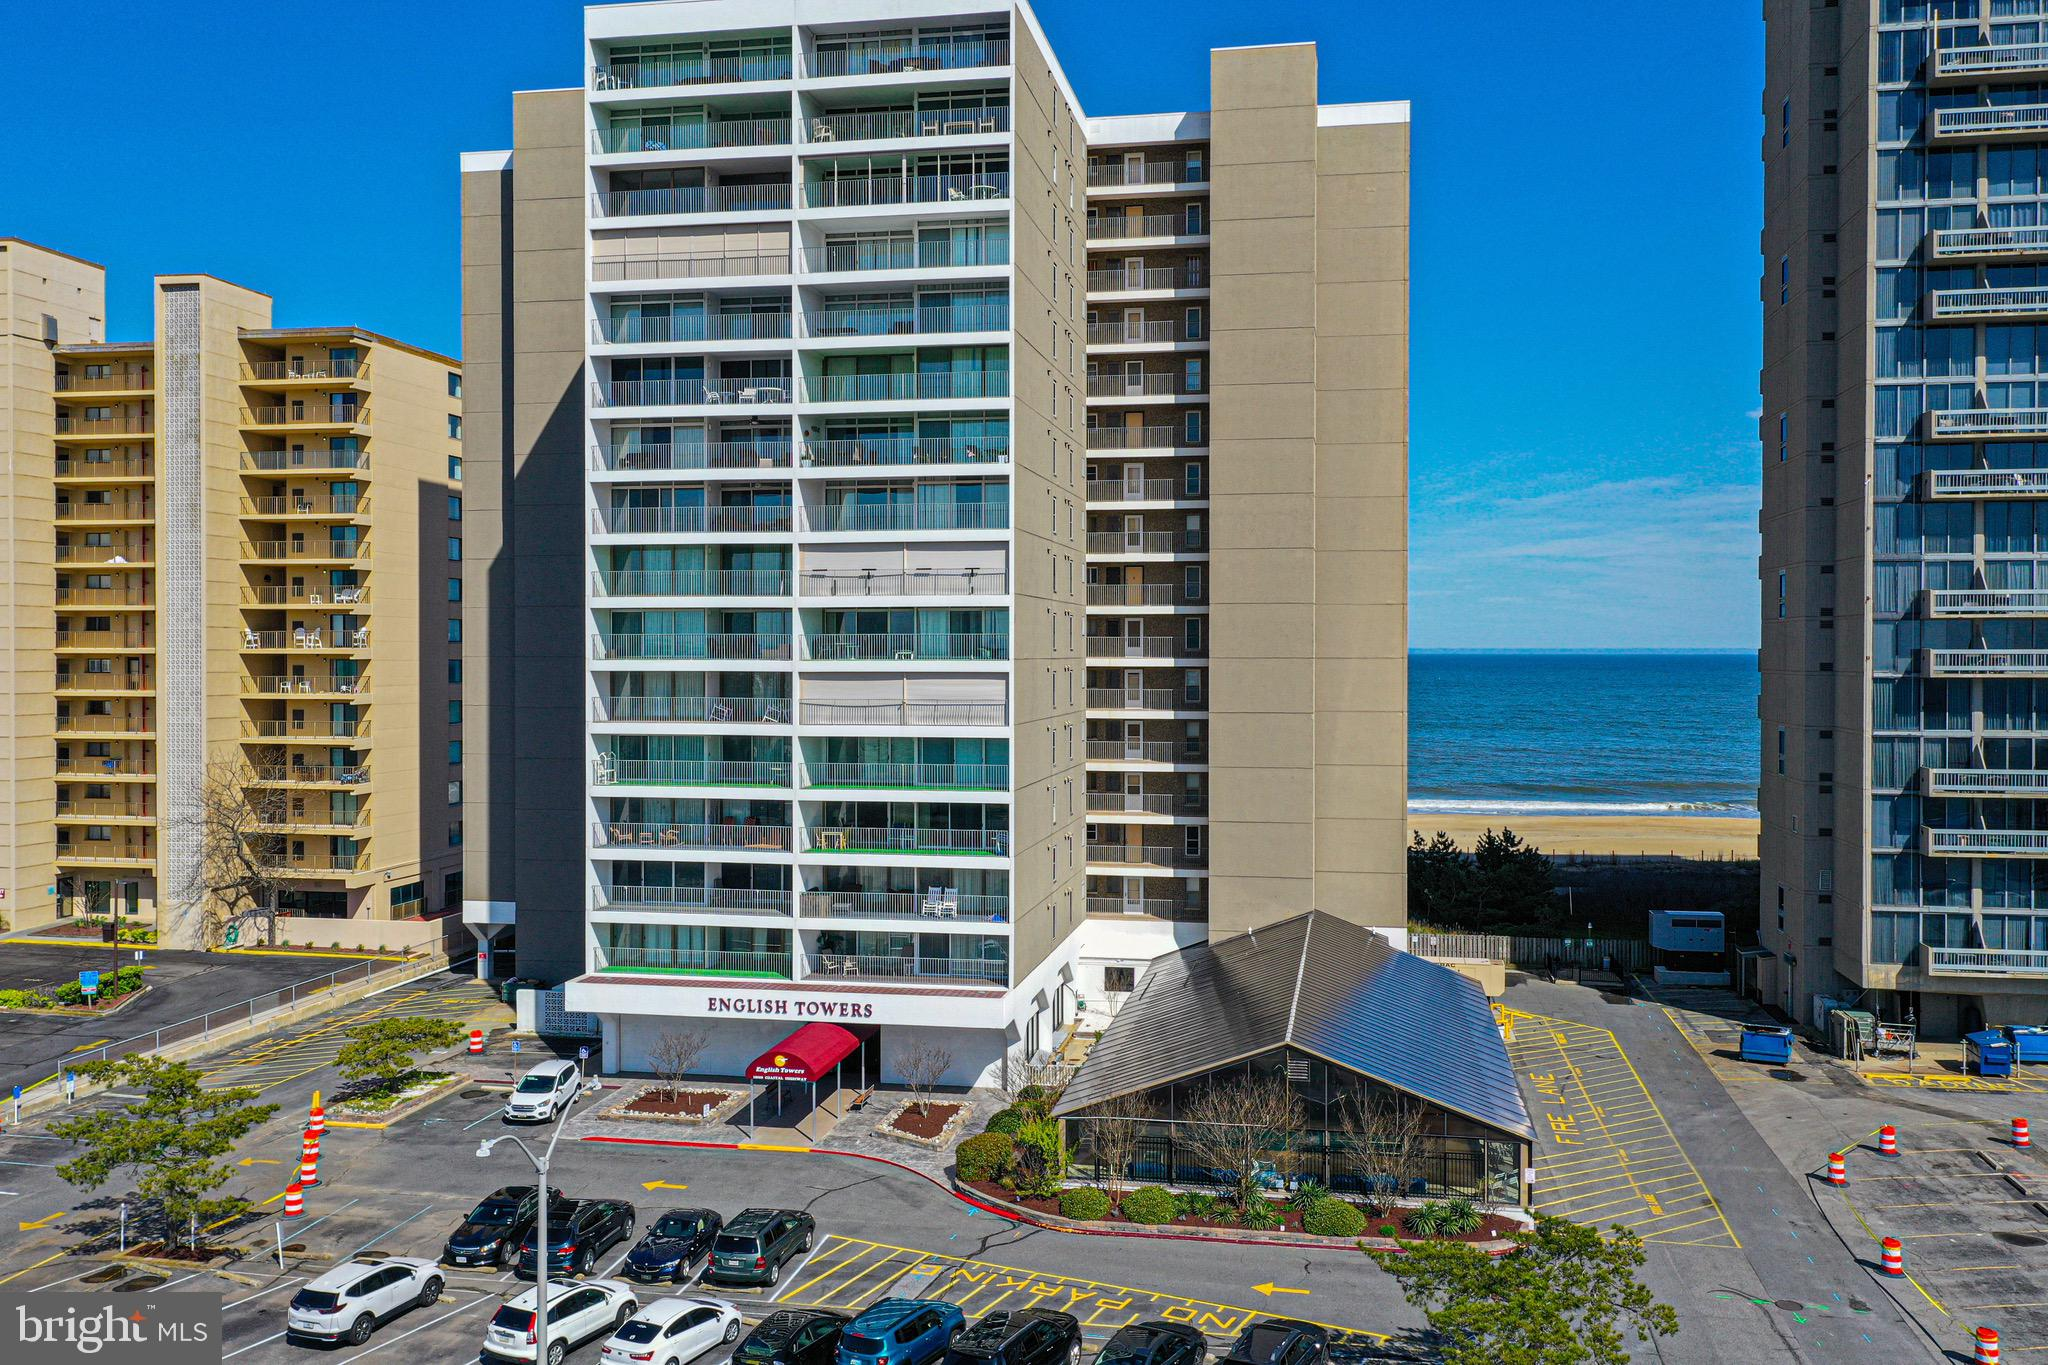 Absolutely pristine 3 bedroom 2 bath condo, meticulously maintained unit,  with quality furnishings, located in a much sought after ocean front building on the north side of town.  This west facing unit offers spacious living areas, bedrooms, and balcony.  Kitchen has been completely and tastefully remodeled. Unit has an outdoor storage closet just steps away from the unit and an additional beach storage locker on the entry level of the building.  Building is secure, with an indoor pool, exercise room, bike rack,  on-site management and on-site maintenance.  Affordable condo fees that include the internet, condo association is very well managed.  Owner will pay ground rent in full  at closing so the property will convey to the  buyer at closing as fee simple.   Don't miss out.  This gem won't last.